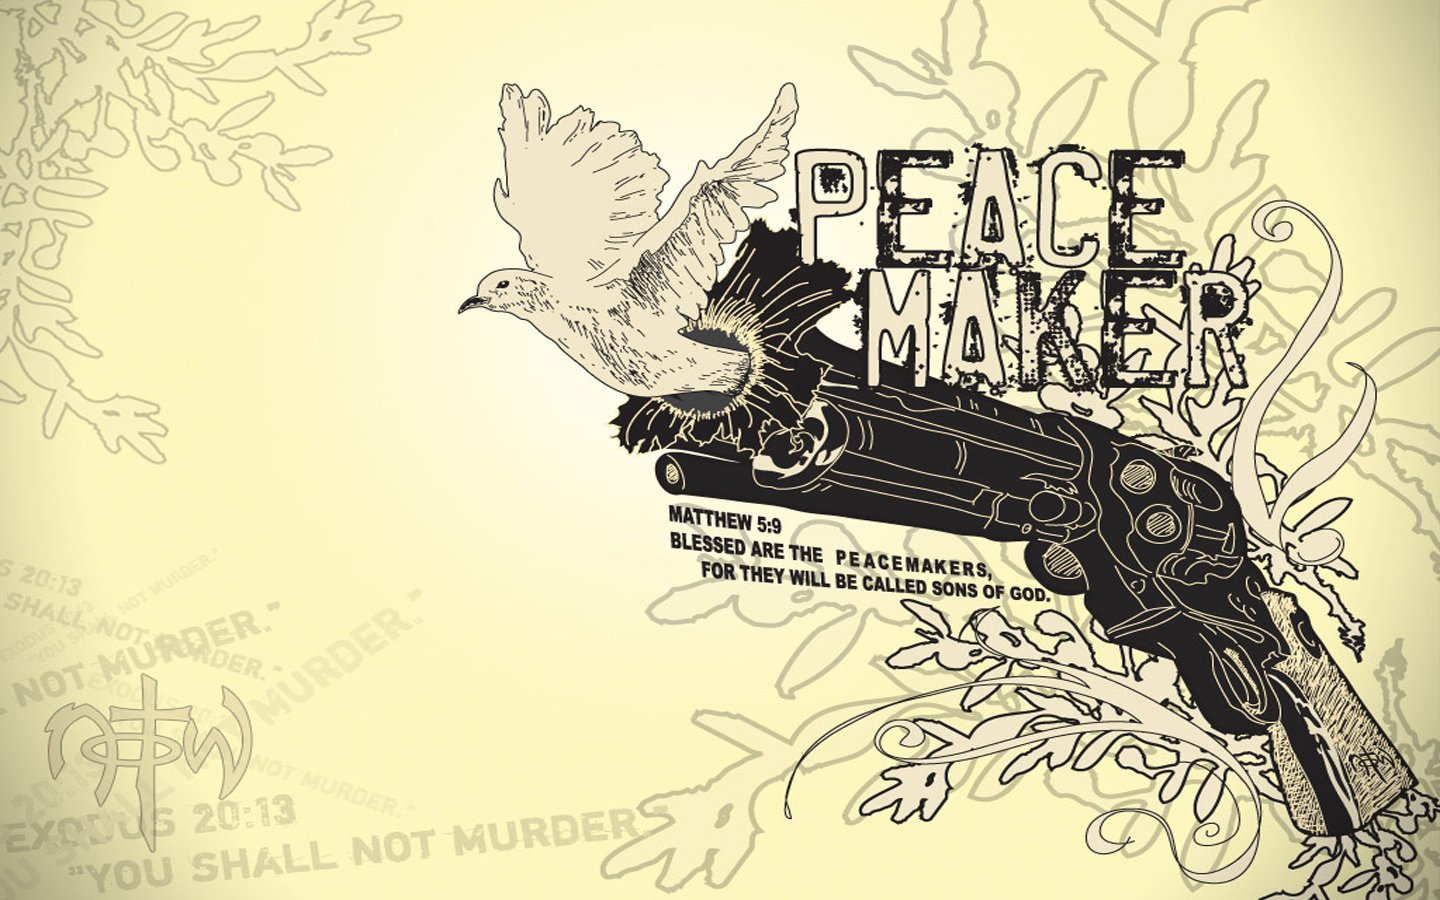 Peace hd wallpaper peace wallpaper hd wallpaper desktop wallpaper 1440x900